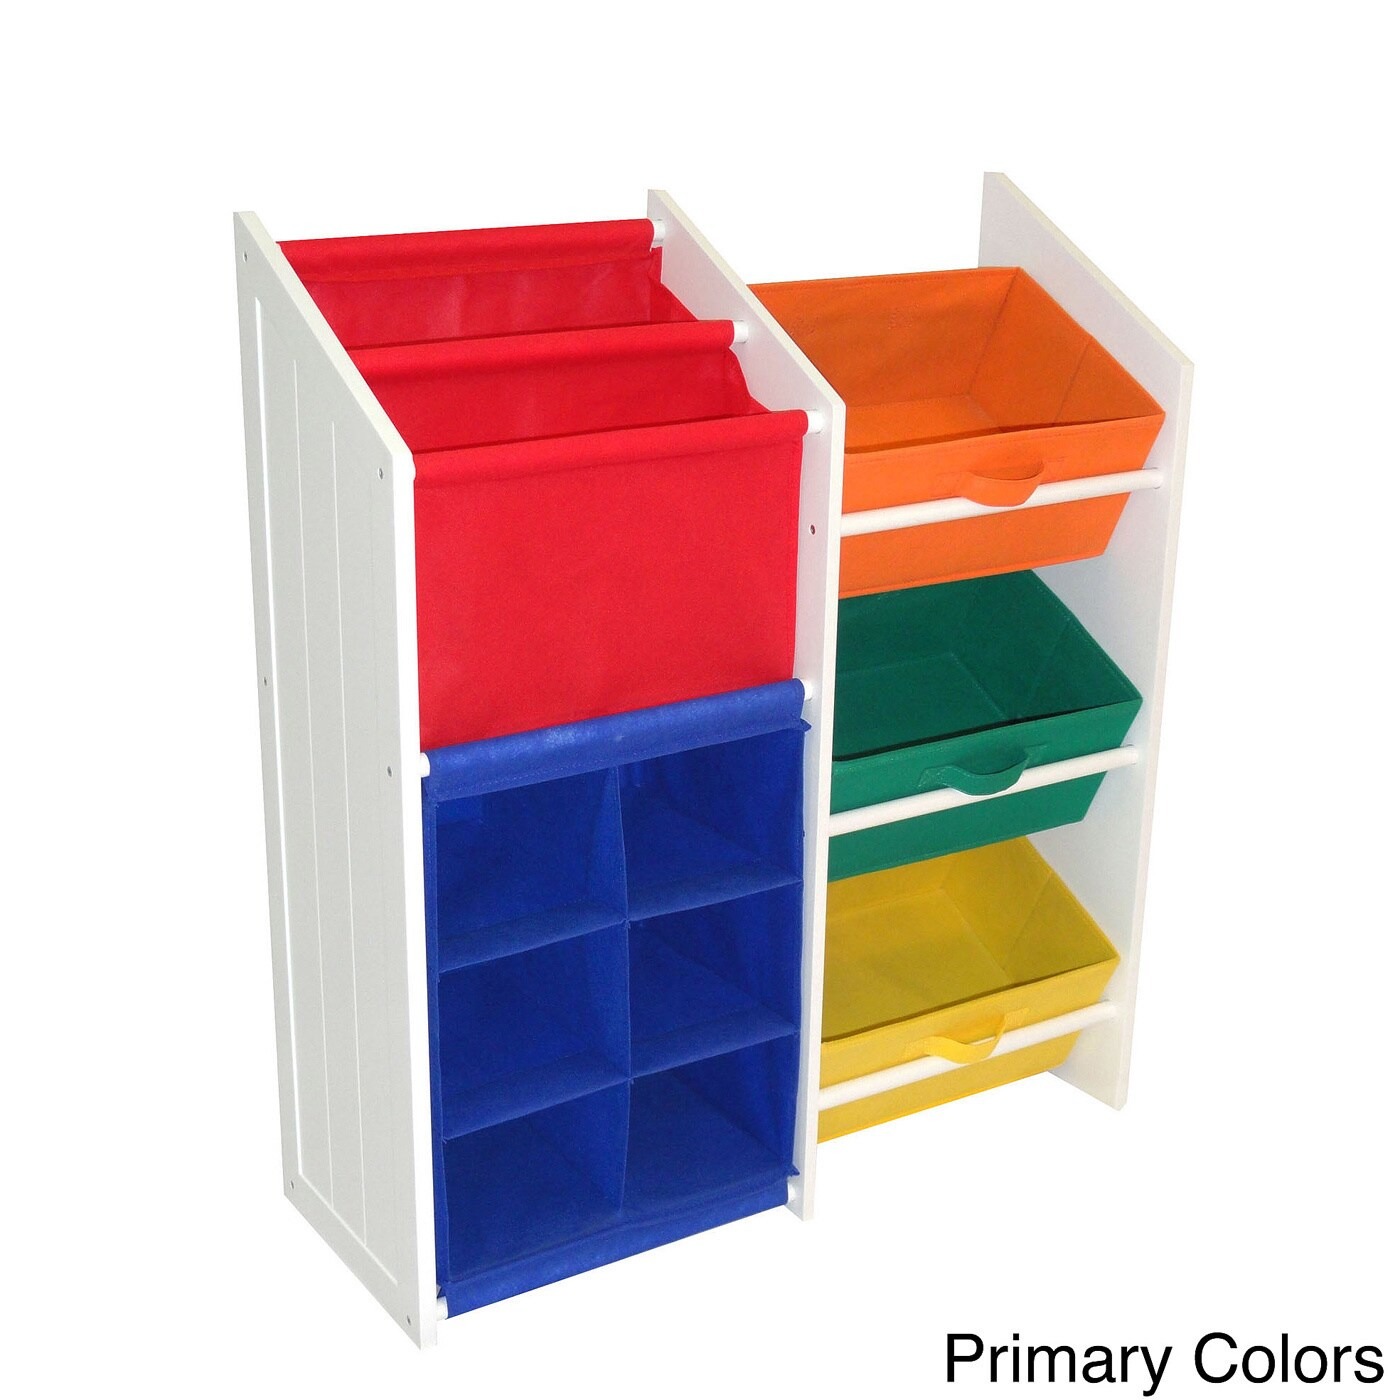 prod organizer shop pair holder spin shelf shoe book online way home eh electronics essentials tools points shopping your more for earn on espresso appliances